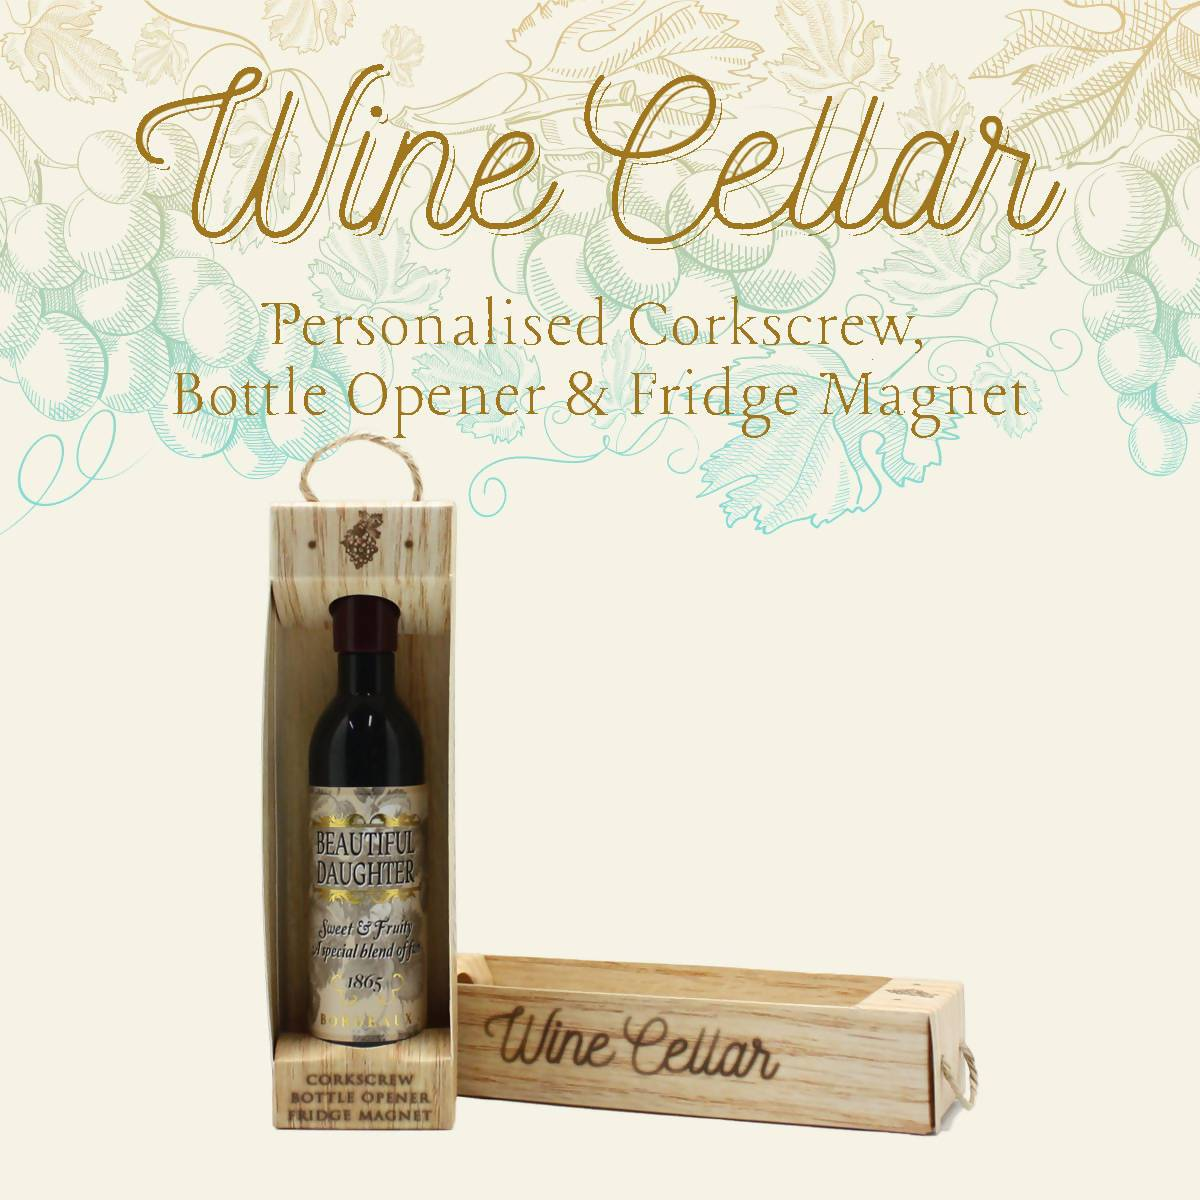 WINE CELLAR - For Wine Lover : Beautiful Daughter - Bottle Openers - La Belle Collection - Naiise